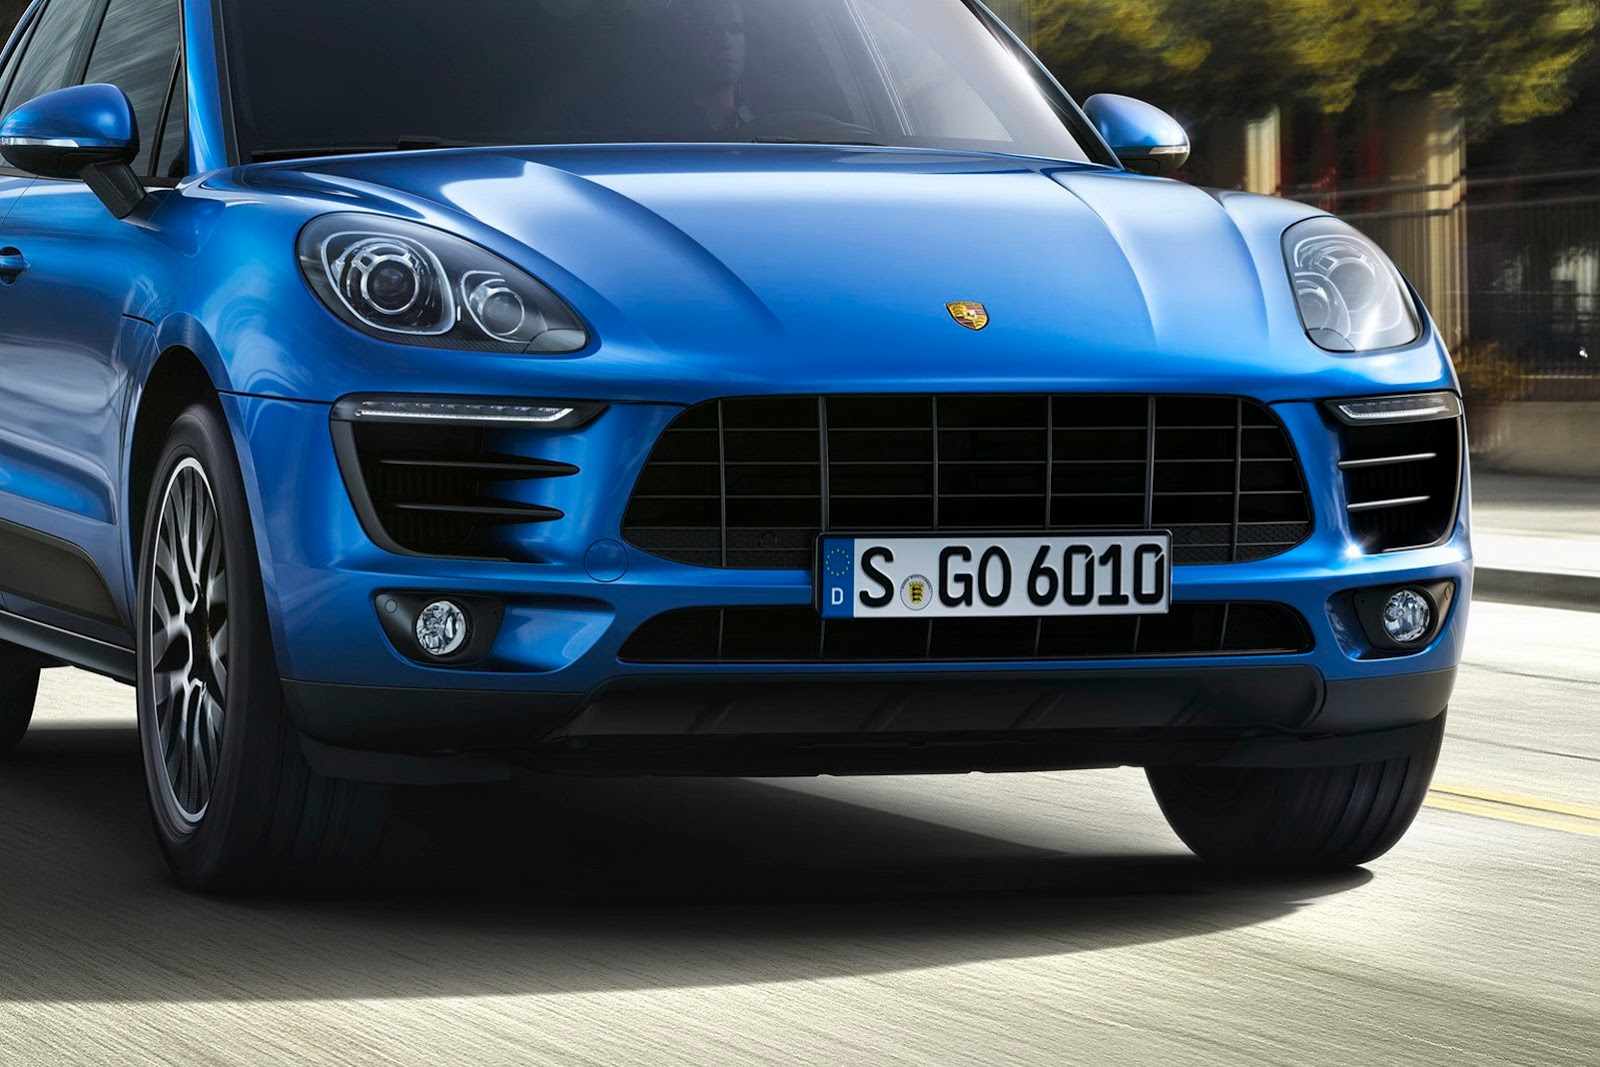 new porsche macan suv to have a base price of usd 50 895 in us. Black Bedroom Furniture Sets. Home Design Ideas